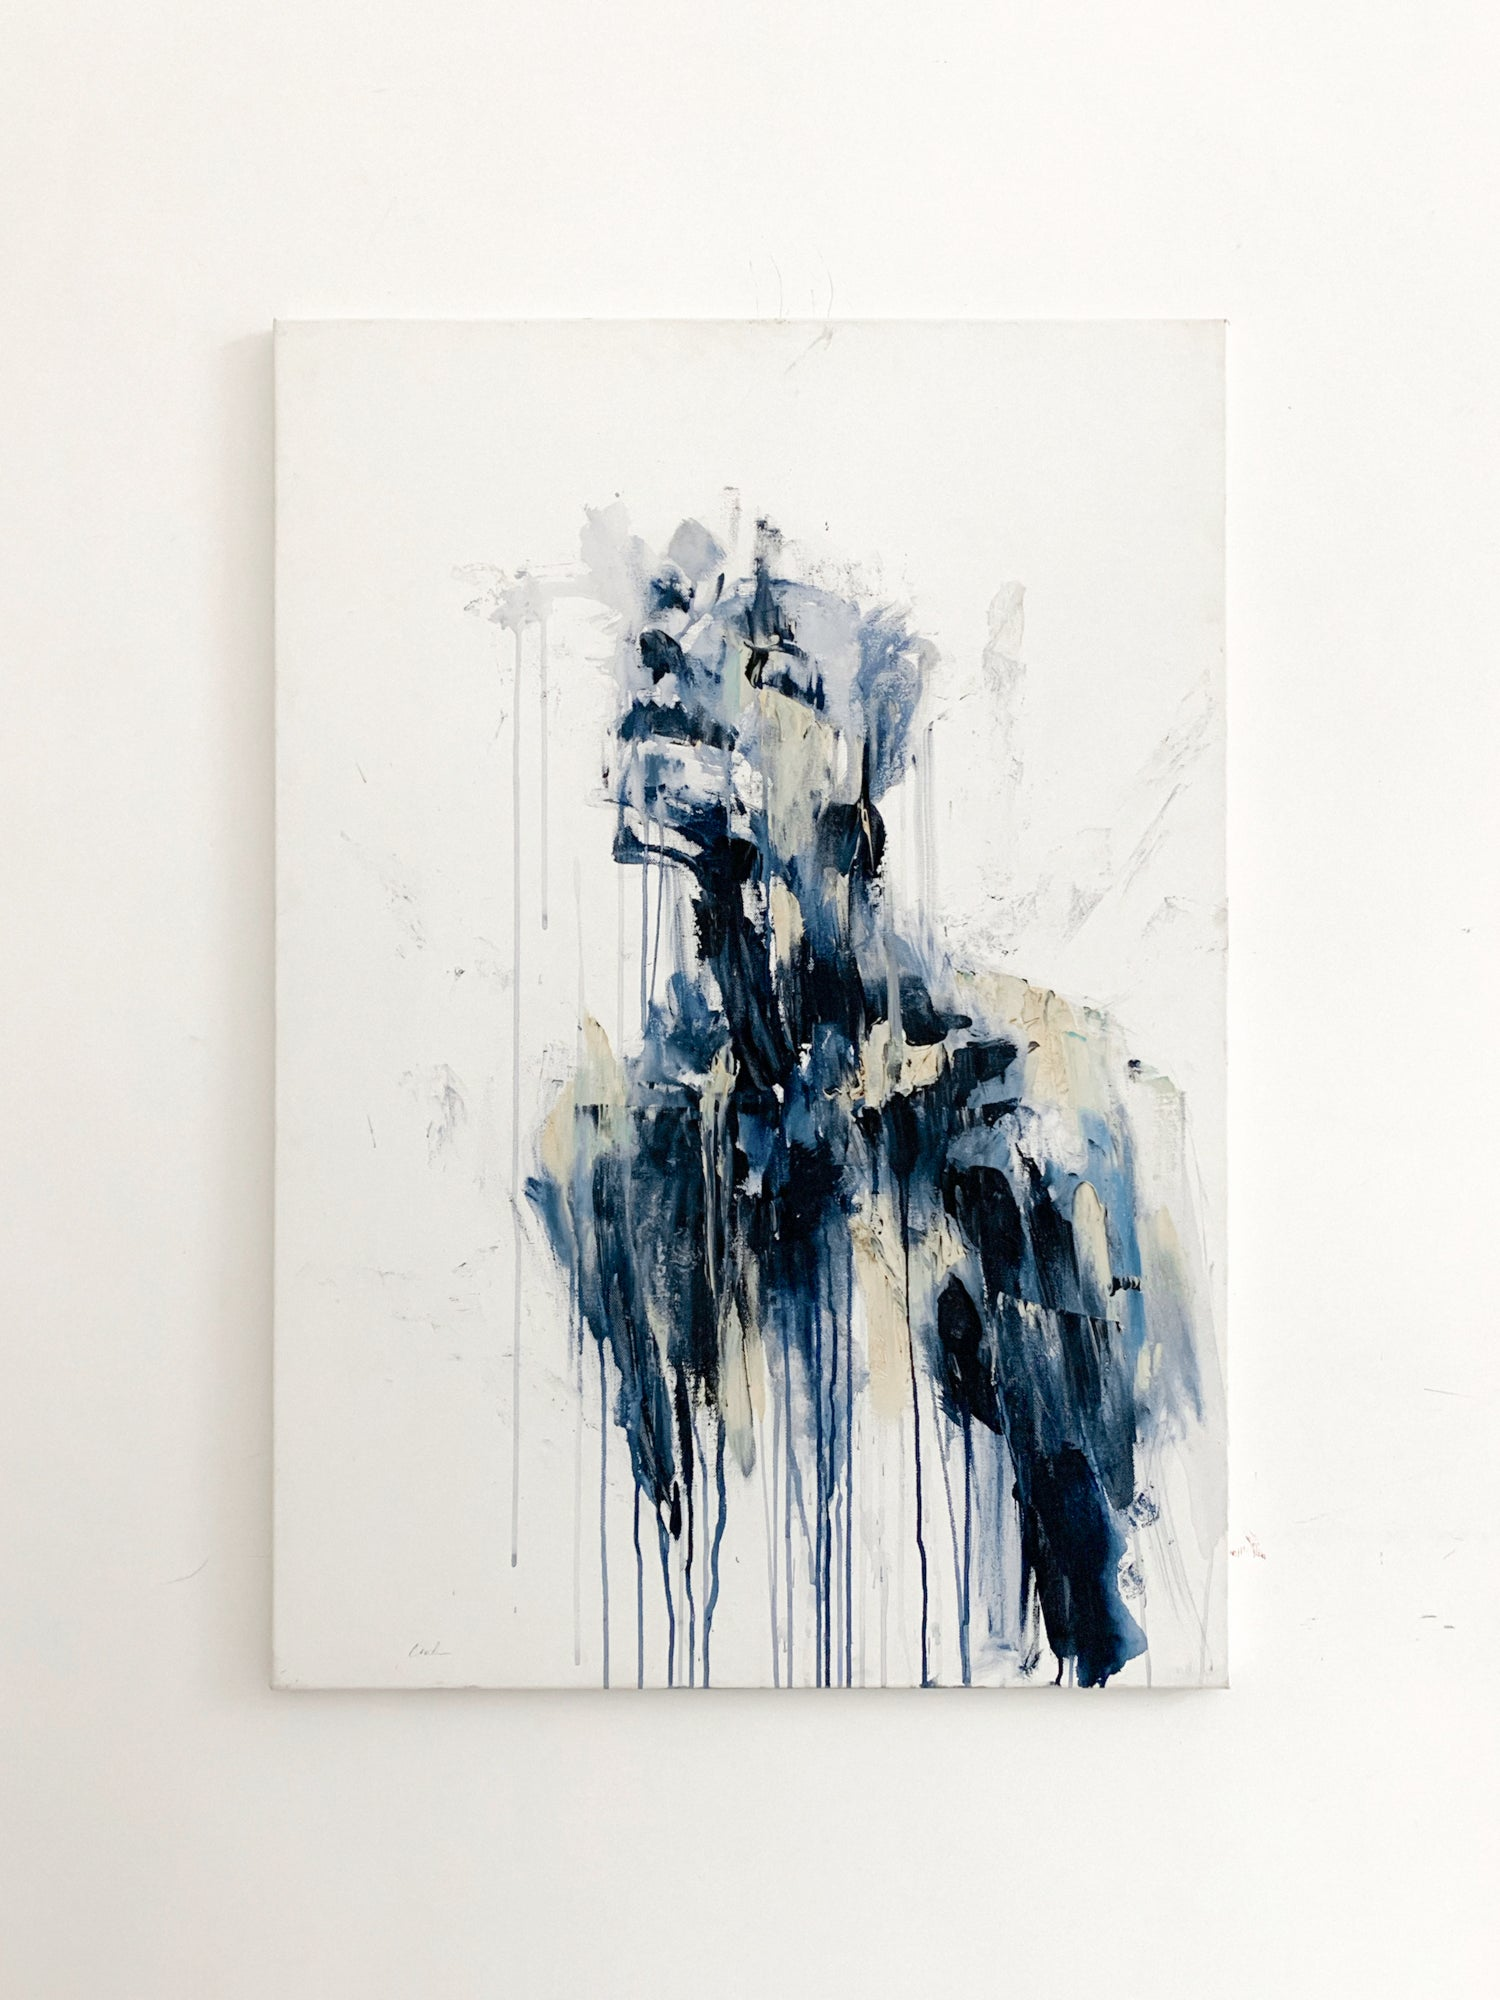 Agnes-Cecile for each beat of his heart